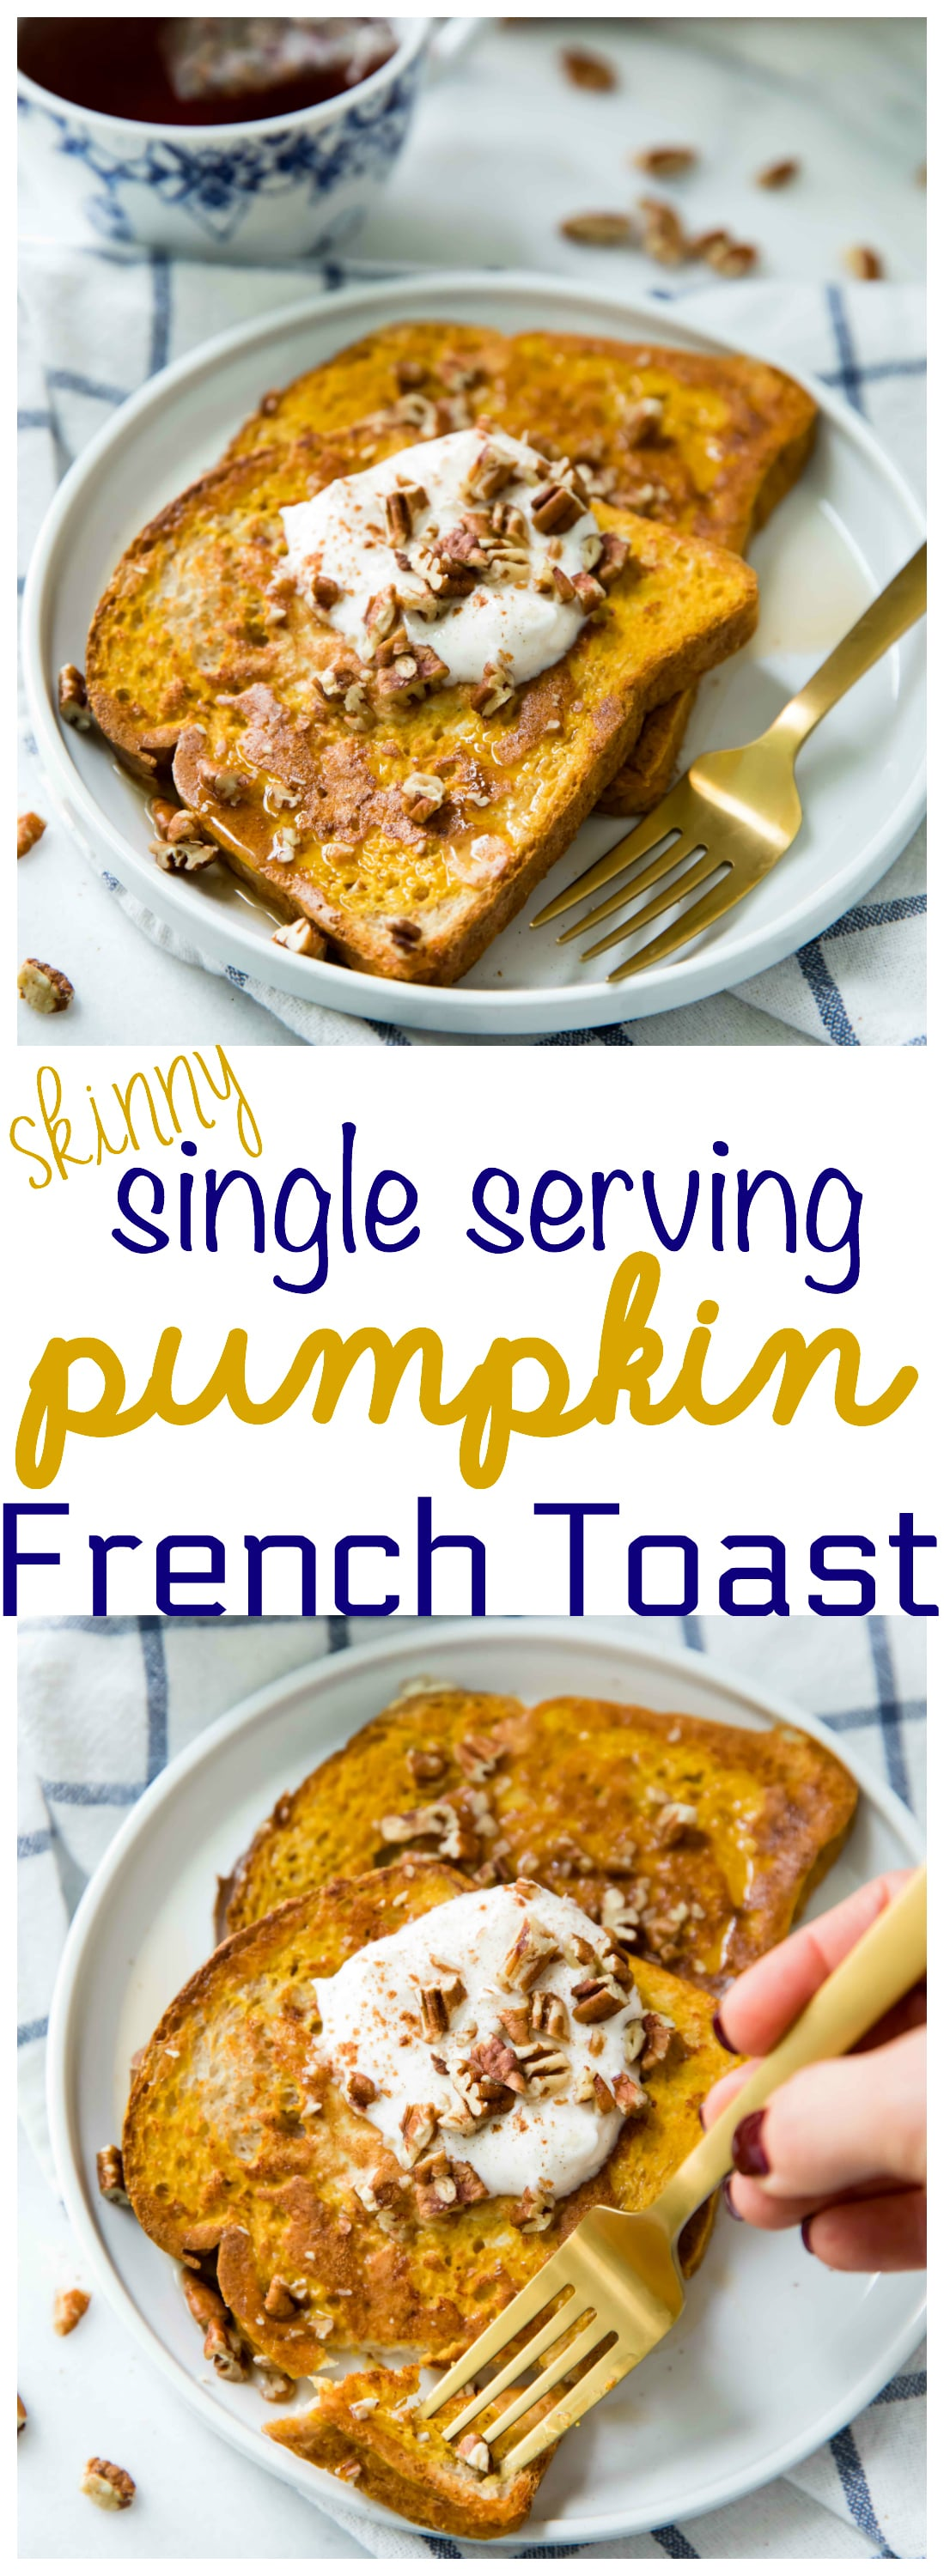 Skinny Single Serving Pumpkin French Toast - easy, yummy and cozy. The perfect fall morning meal and comfort food heaven at its finest!